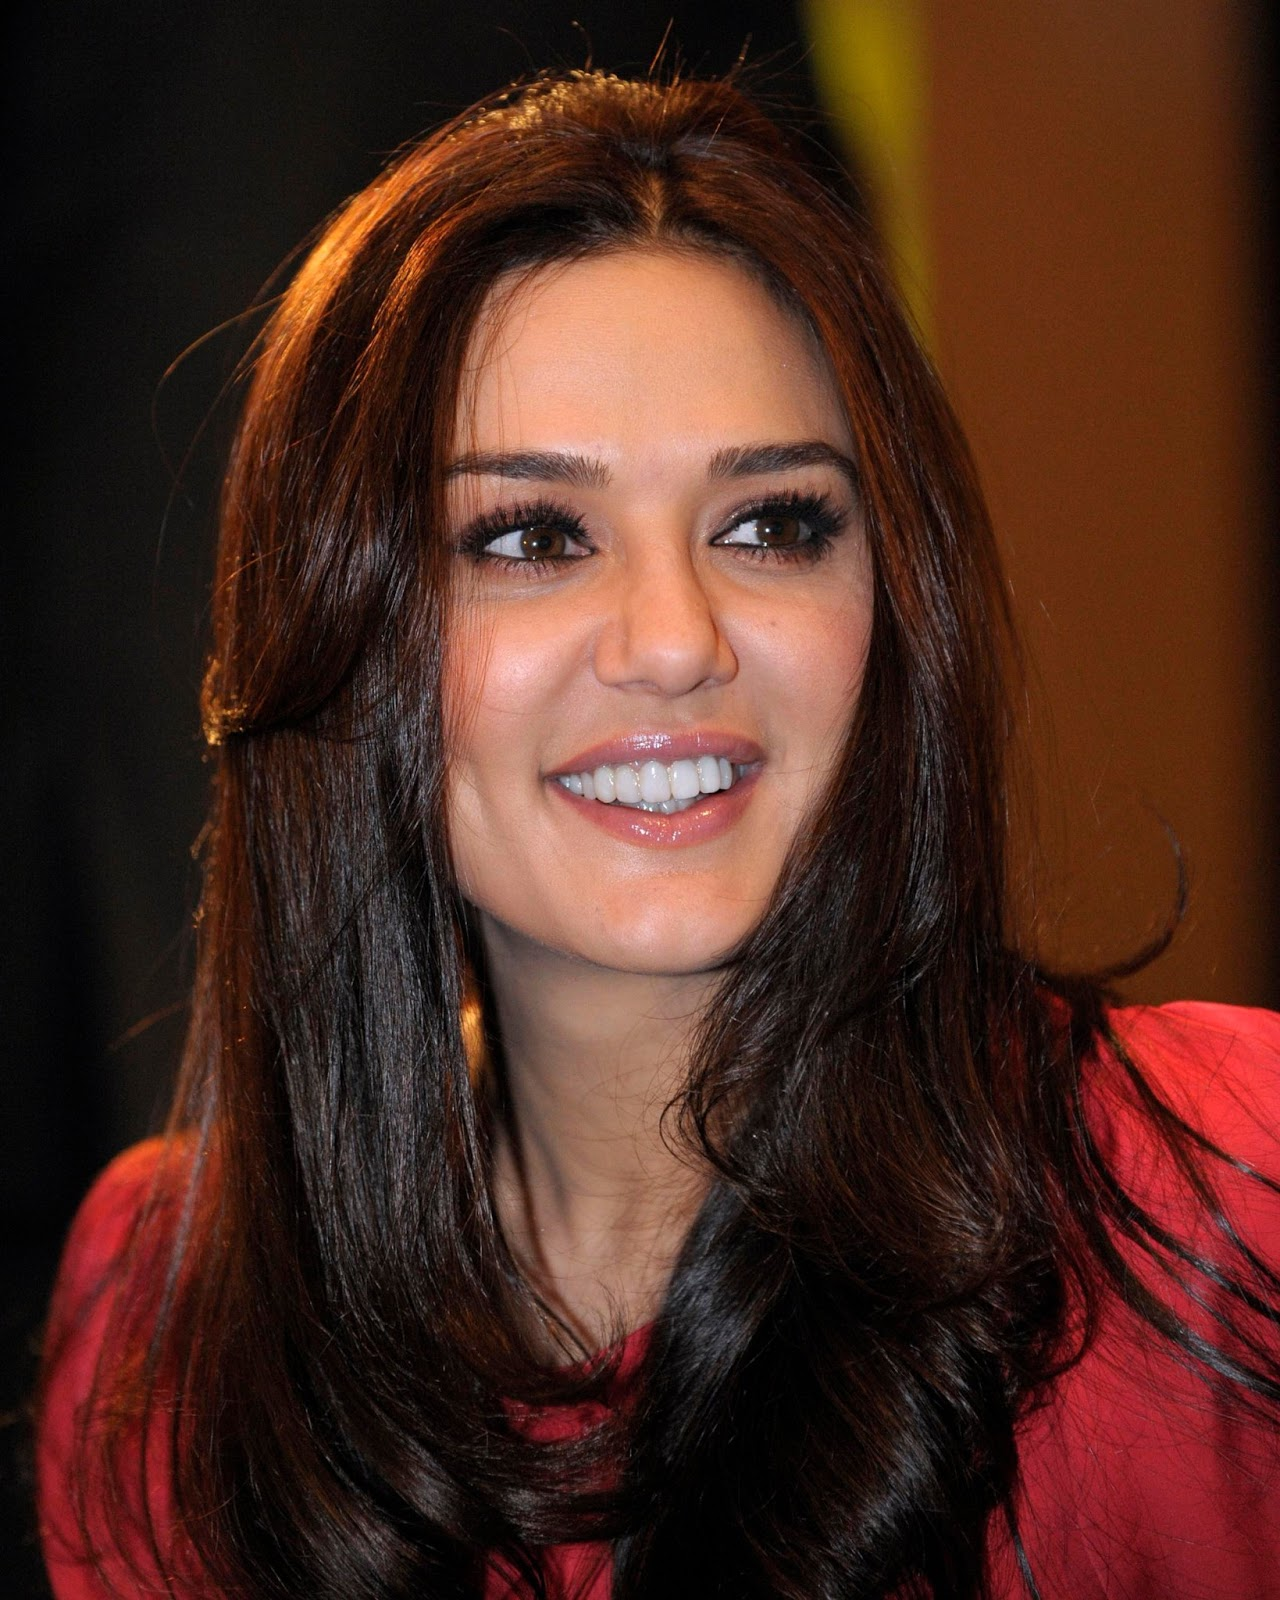 Hd Wallpapers Fine Preity Zinta Hot Photo Shoot Free -9220